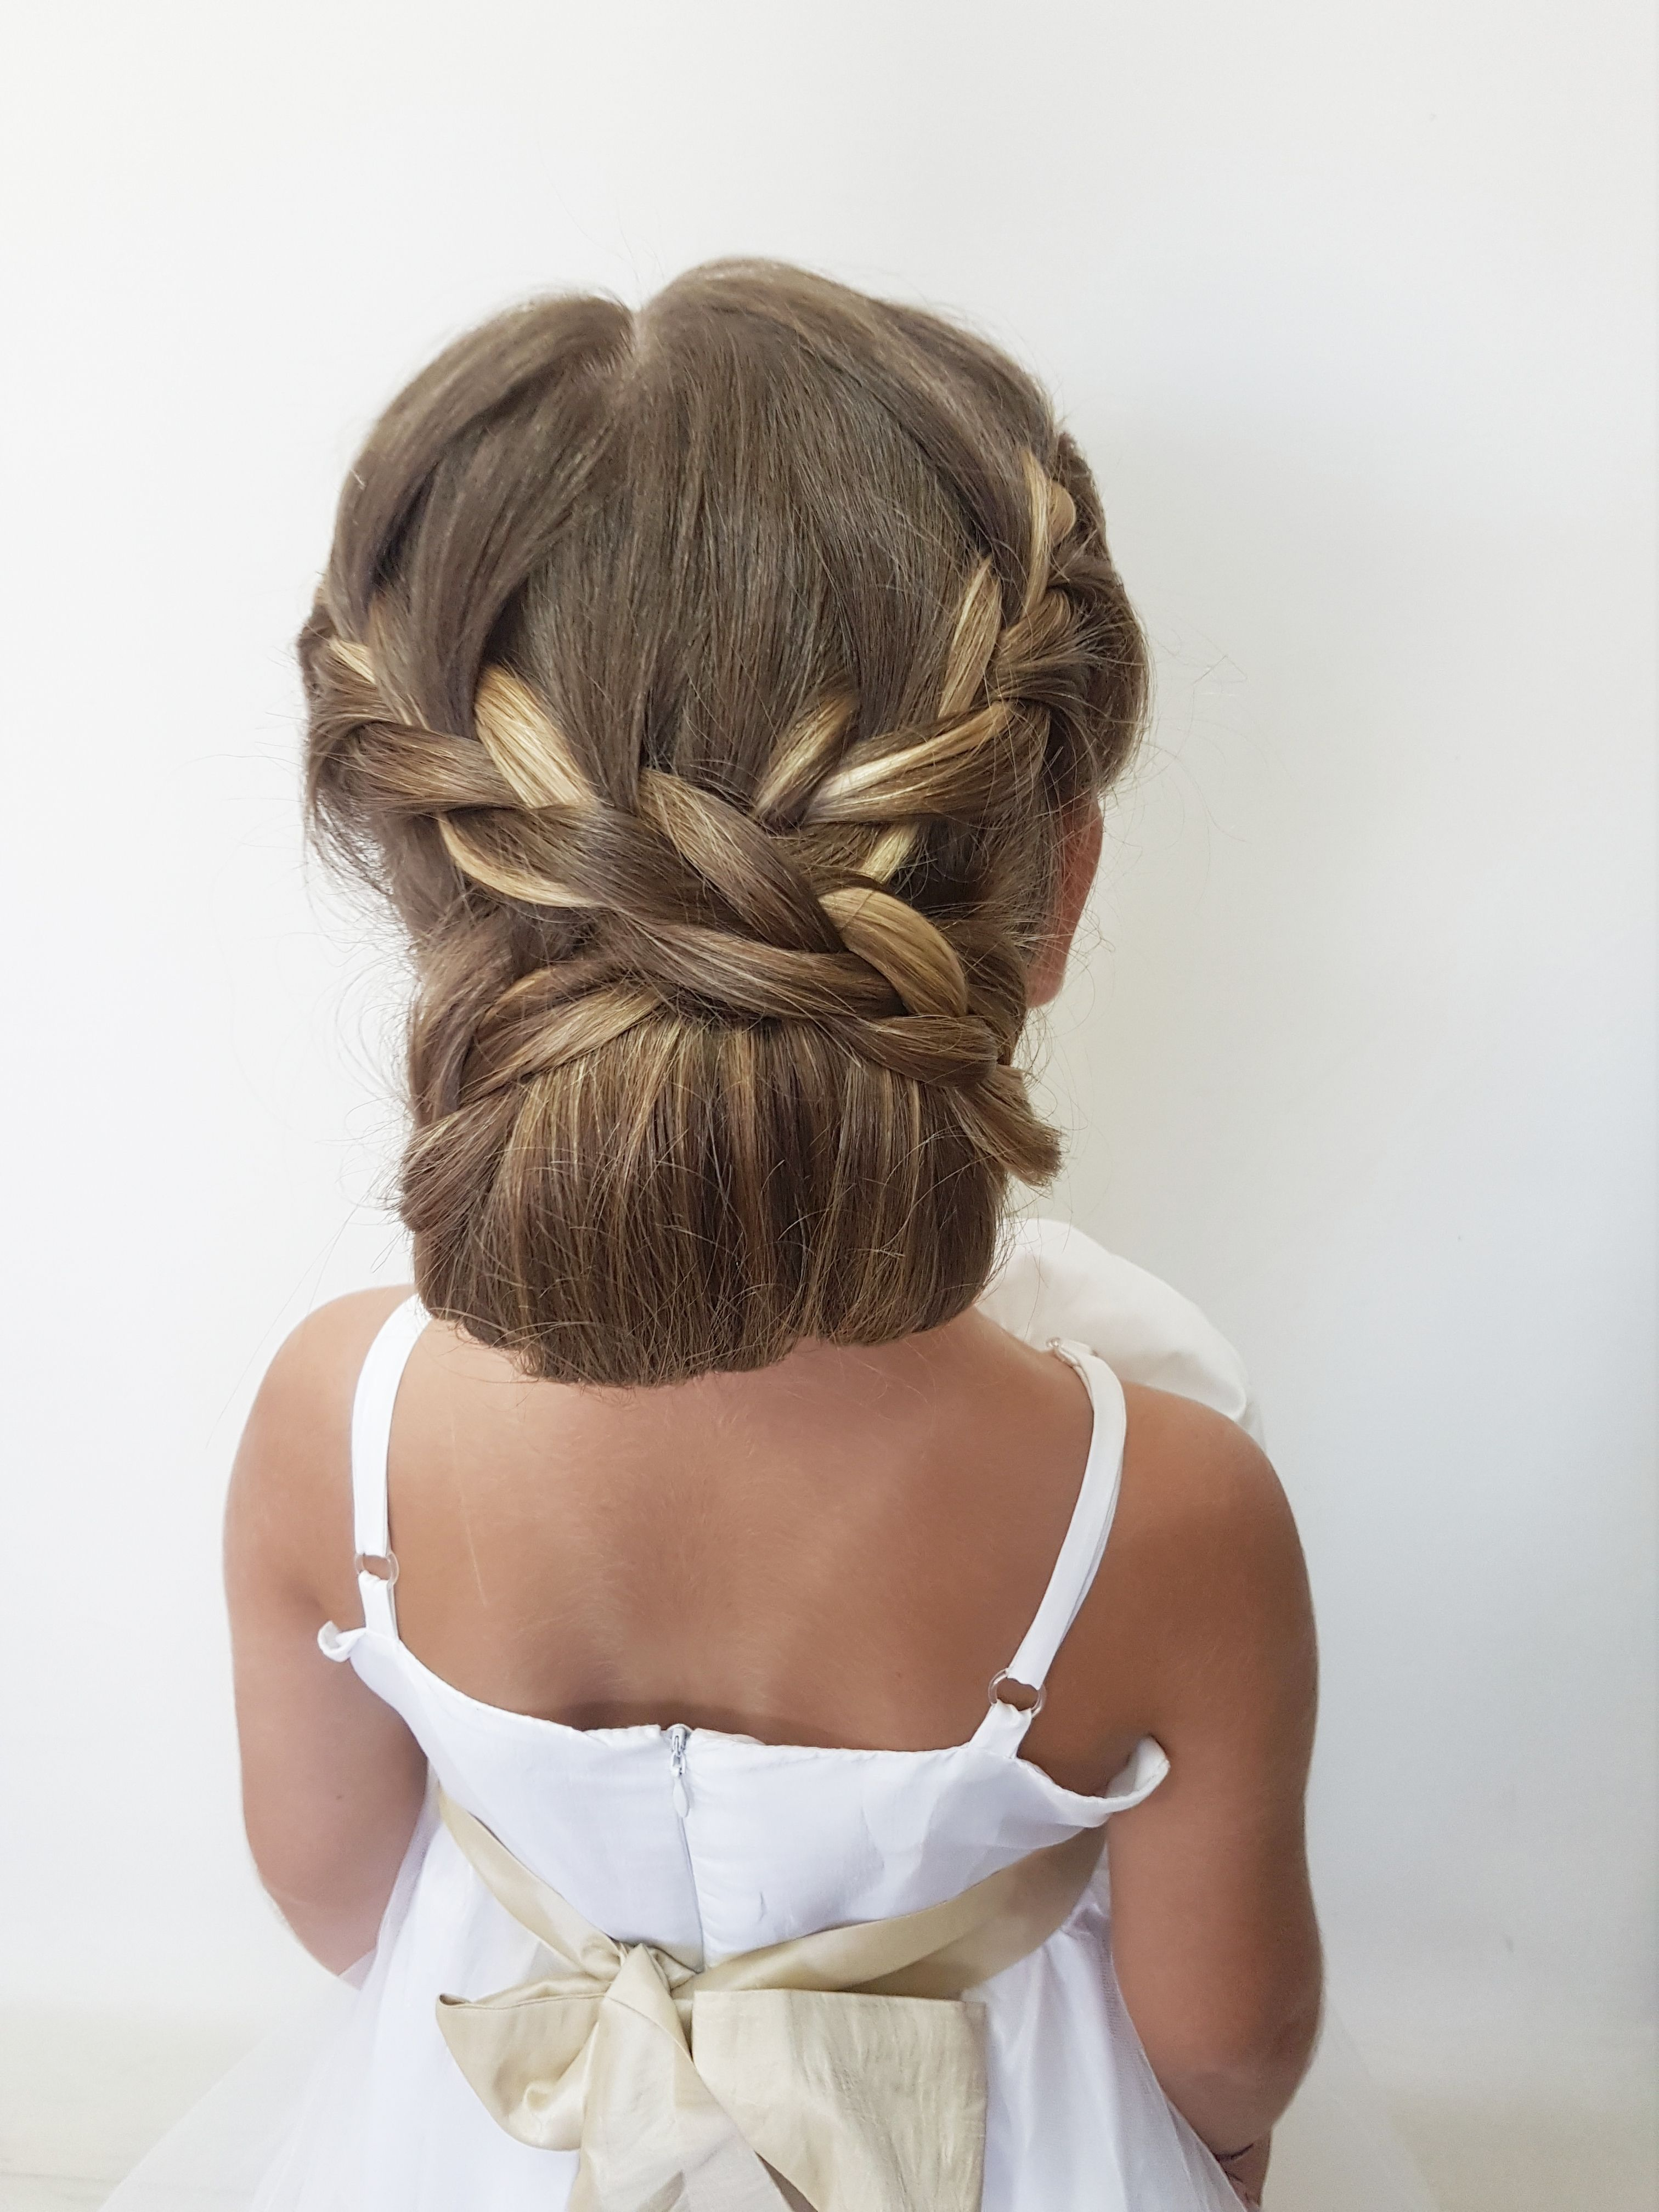 Wedding Hairstyles For Kids Classic Wedding Hairstyles For Girls Little Girl Wedding Hairstyles Kids Updo Hairstyles